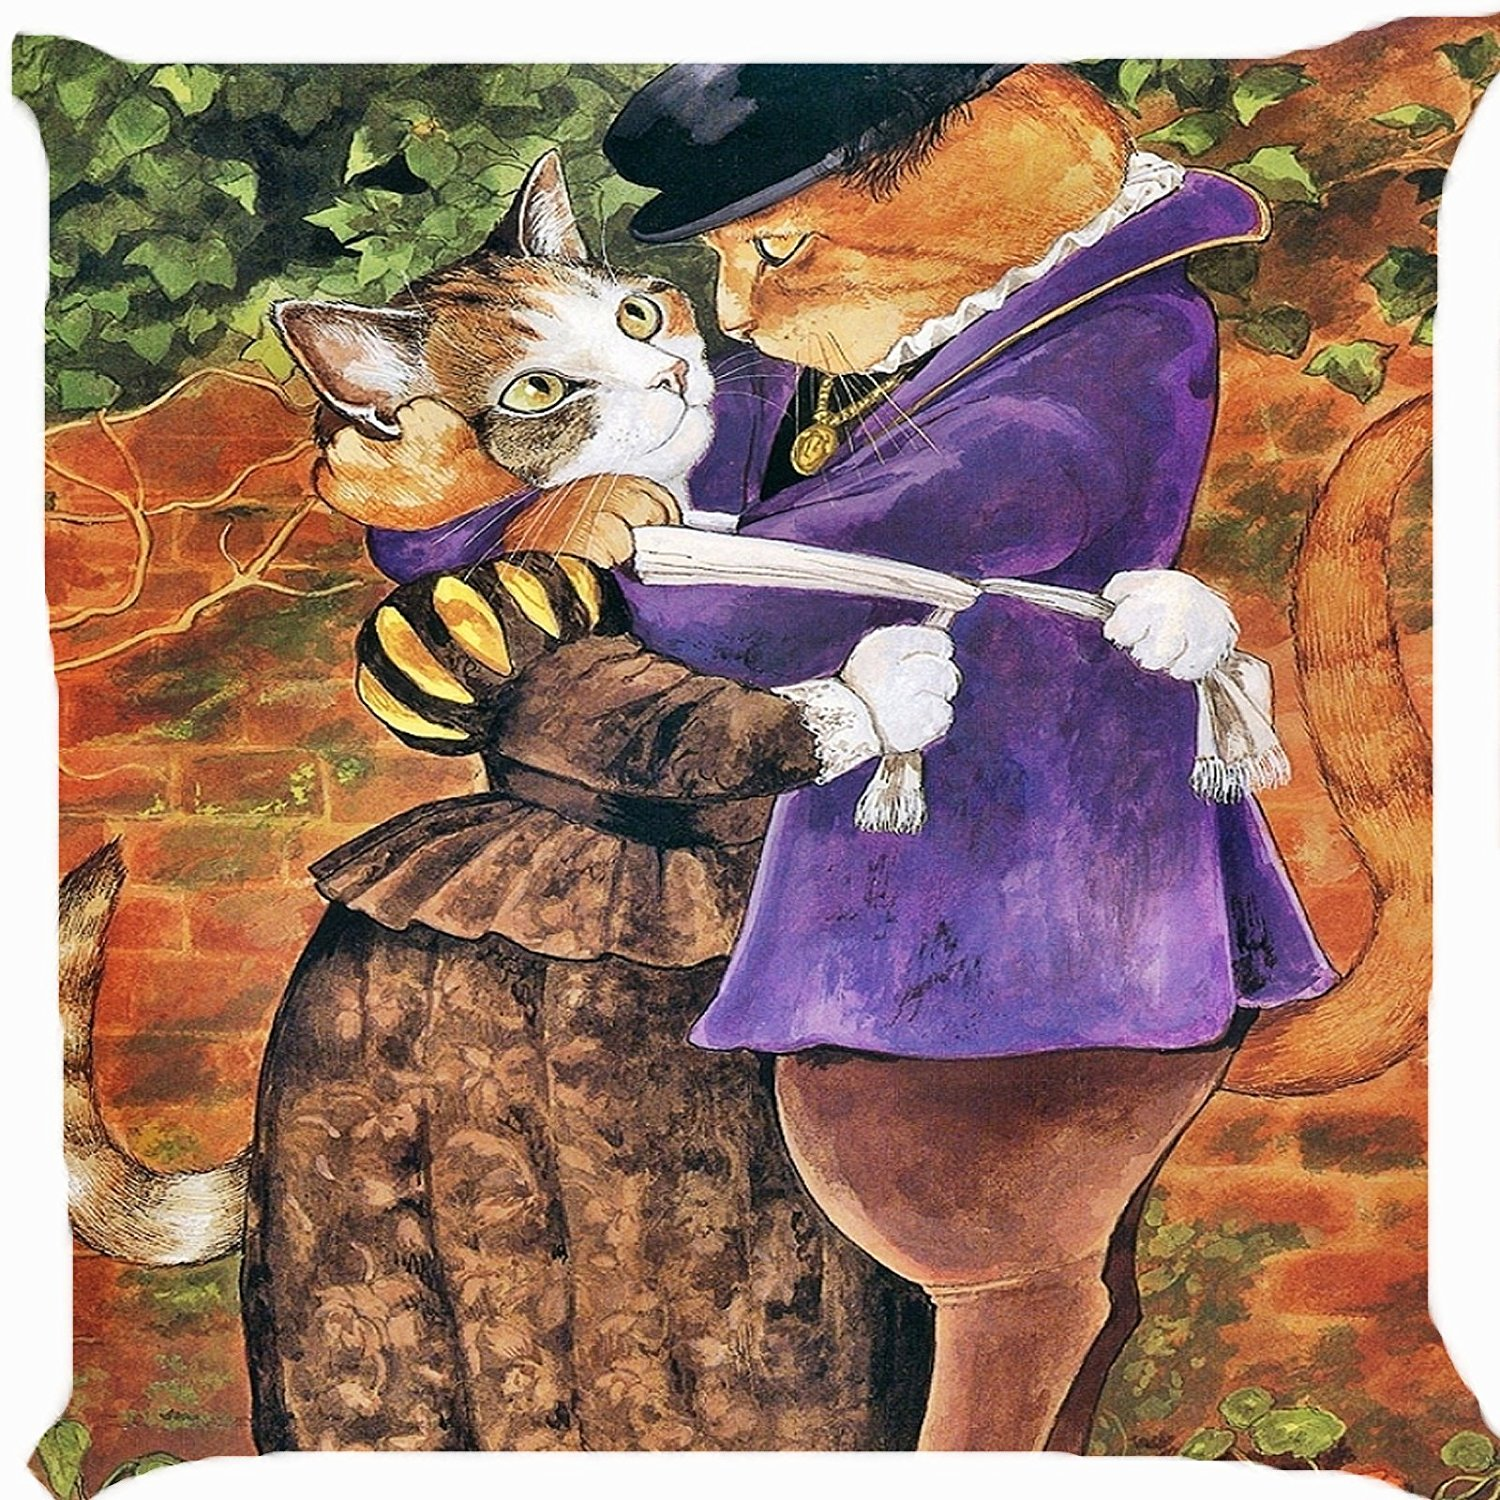 Cushion cover throw pillow case 18 inch retro Victorian cat boy girl hug sweet couple cute kitty both sides image zipper